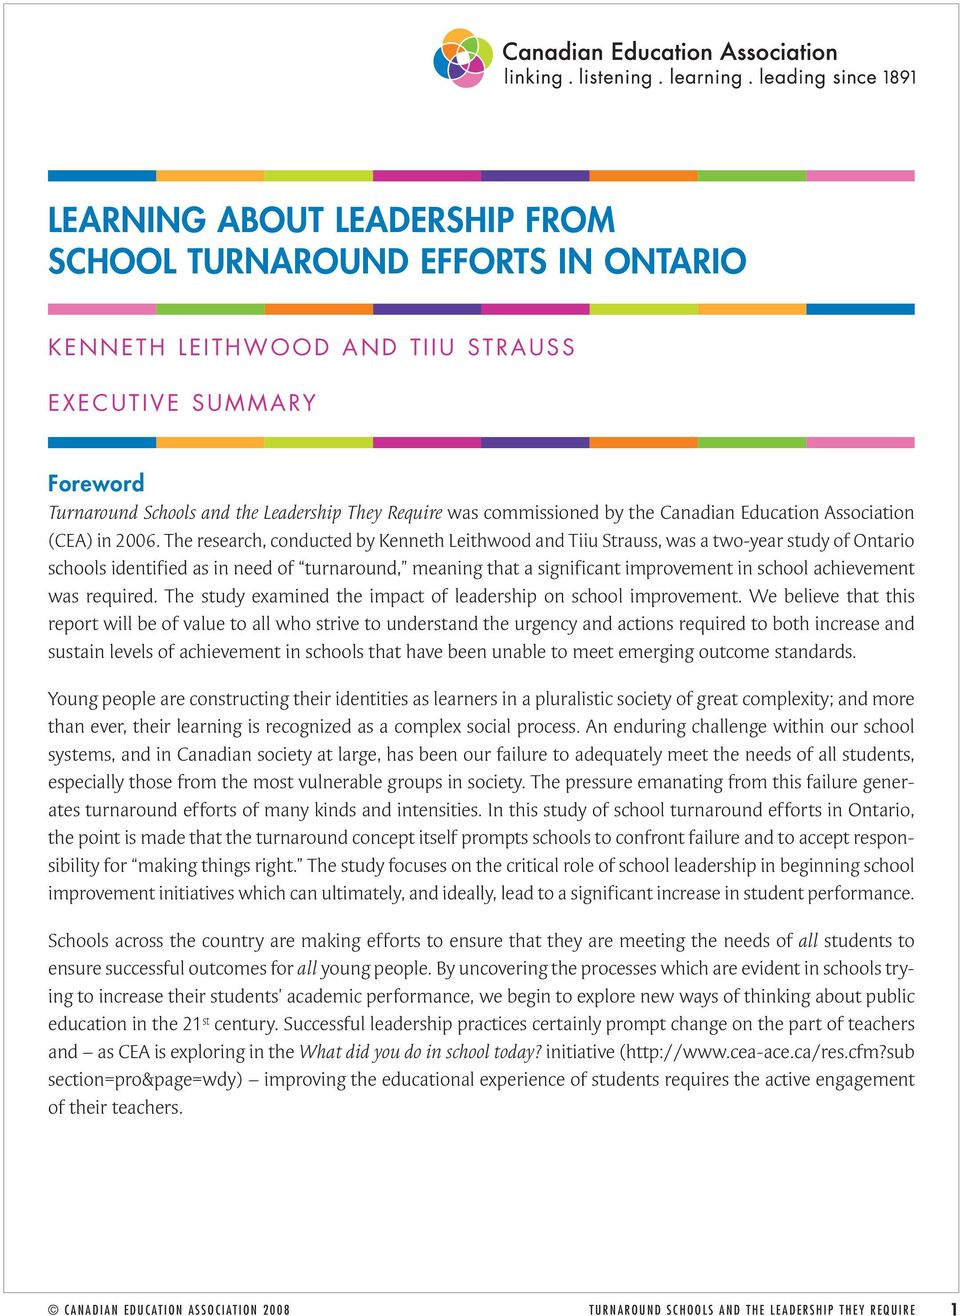 The research, conducted by Kenneth Leithwood and Tiiu Strauss, was a two-year study of Ontario schools identified as in need of turnaround, meaning that a significant improvement in school